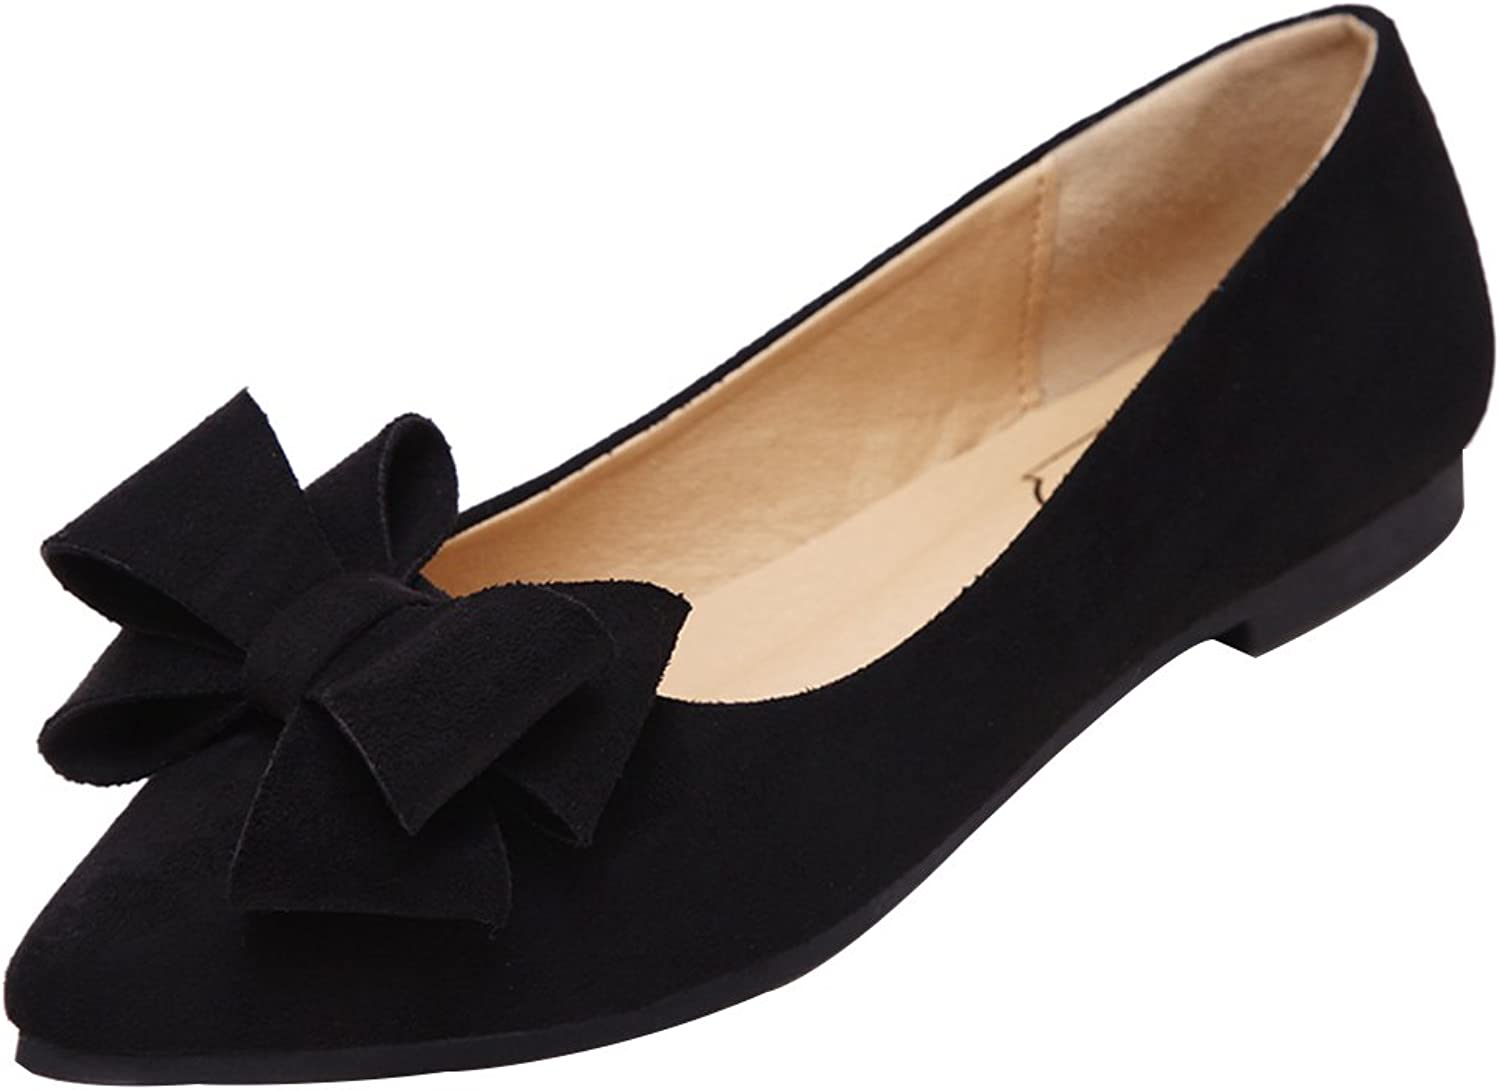 Kyle Walsh Pa Women Casual Bowknot Pointed Toe Suede Flats Slip On shoes